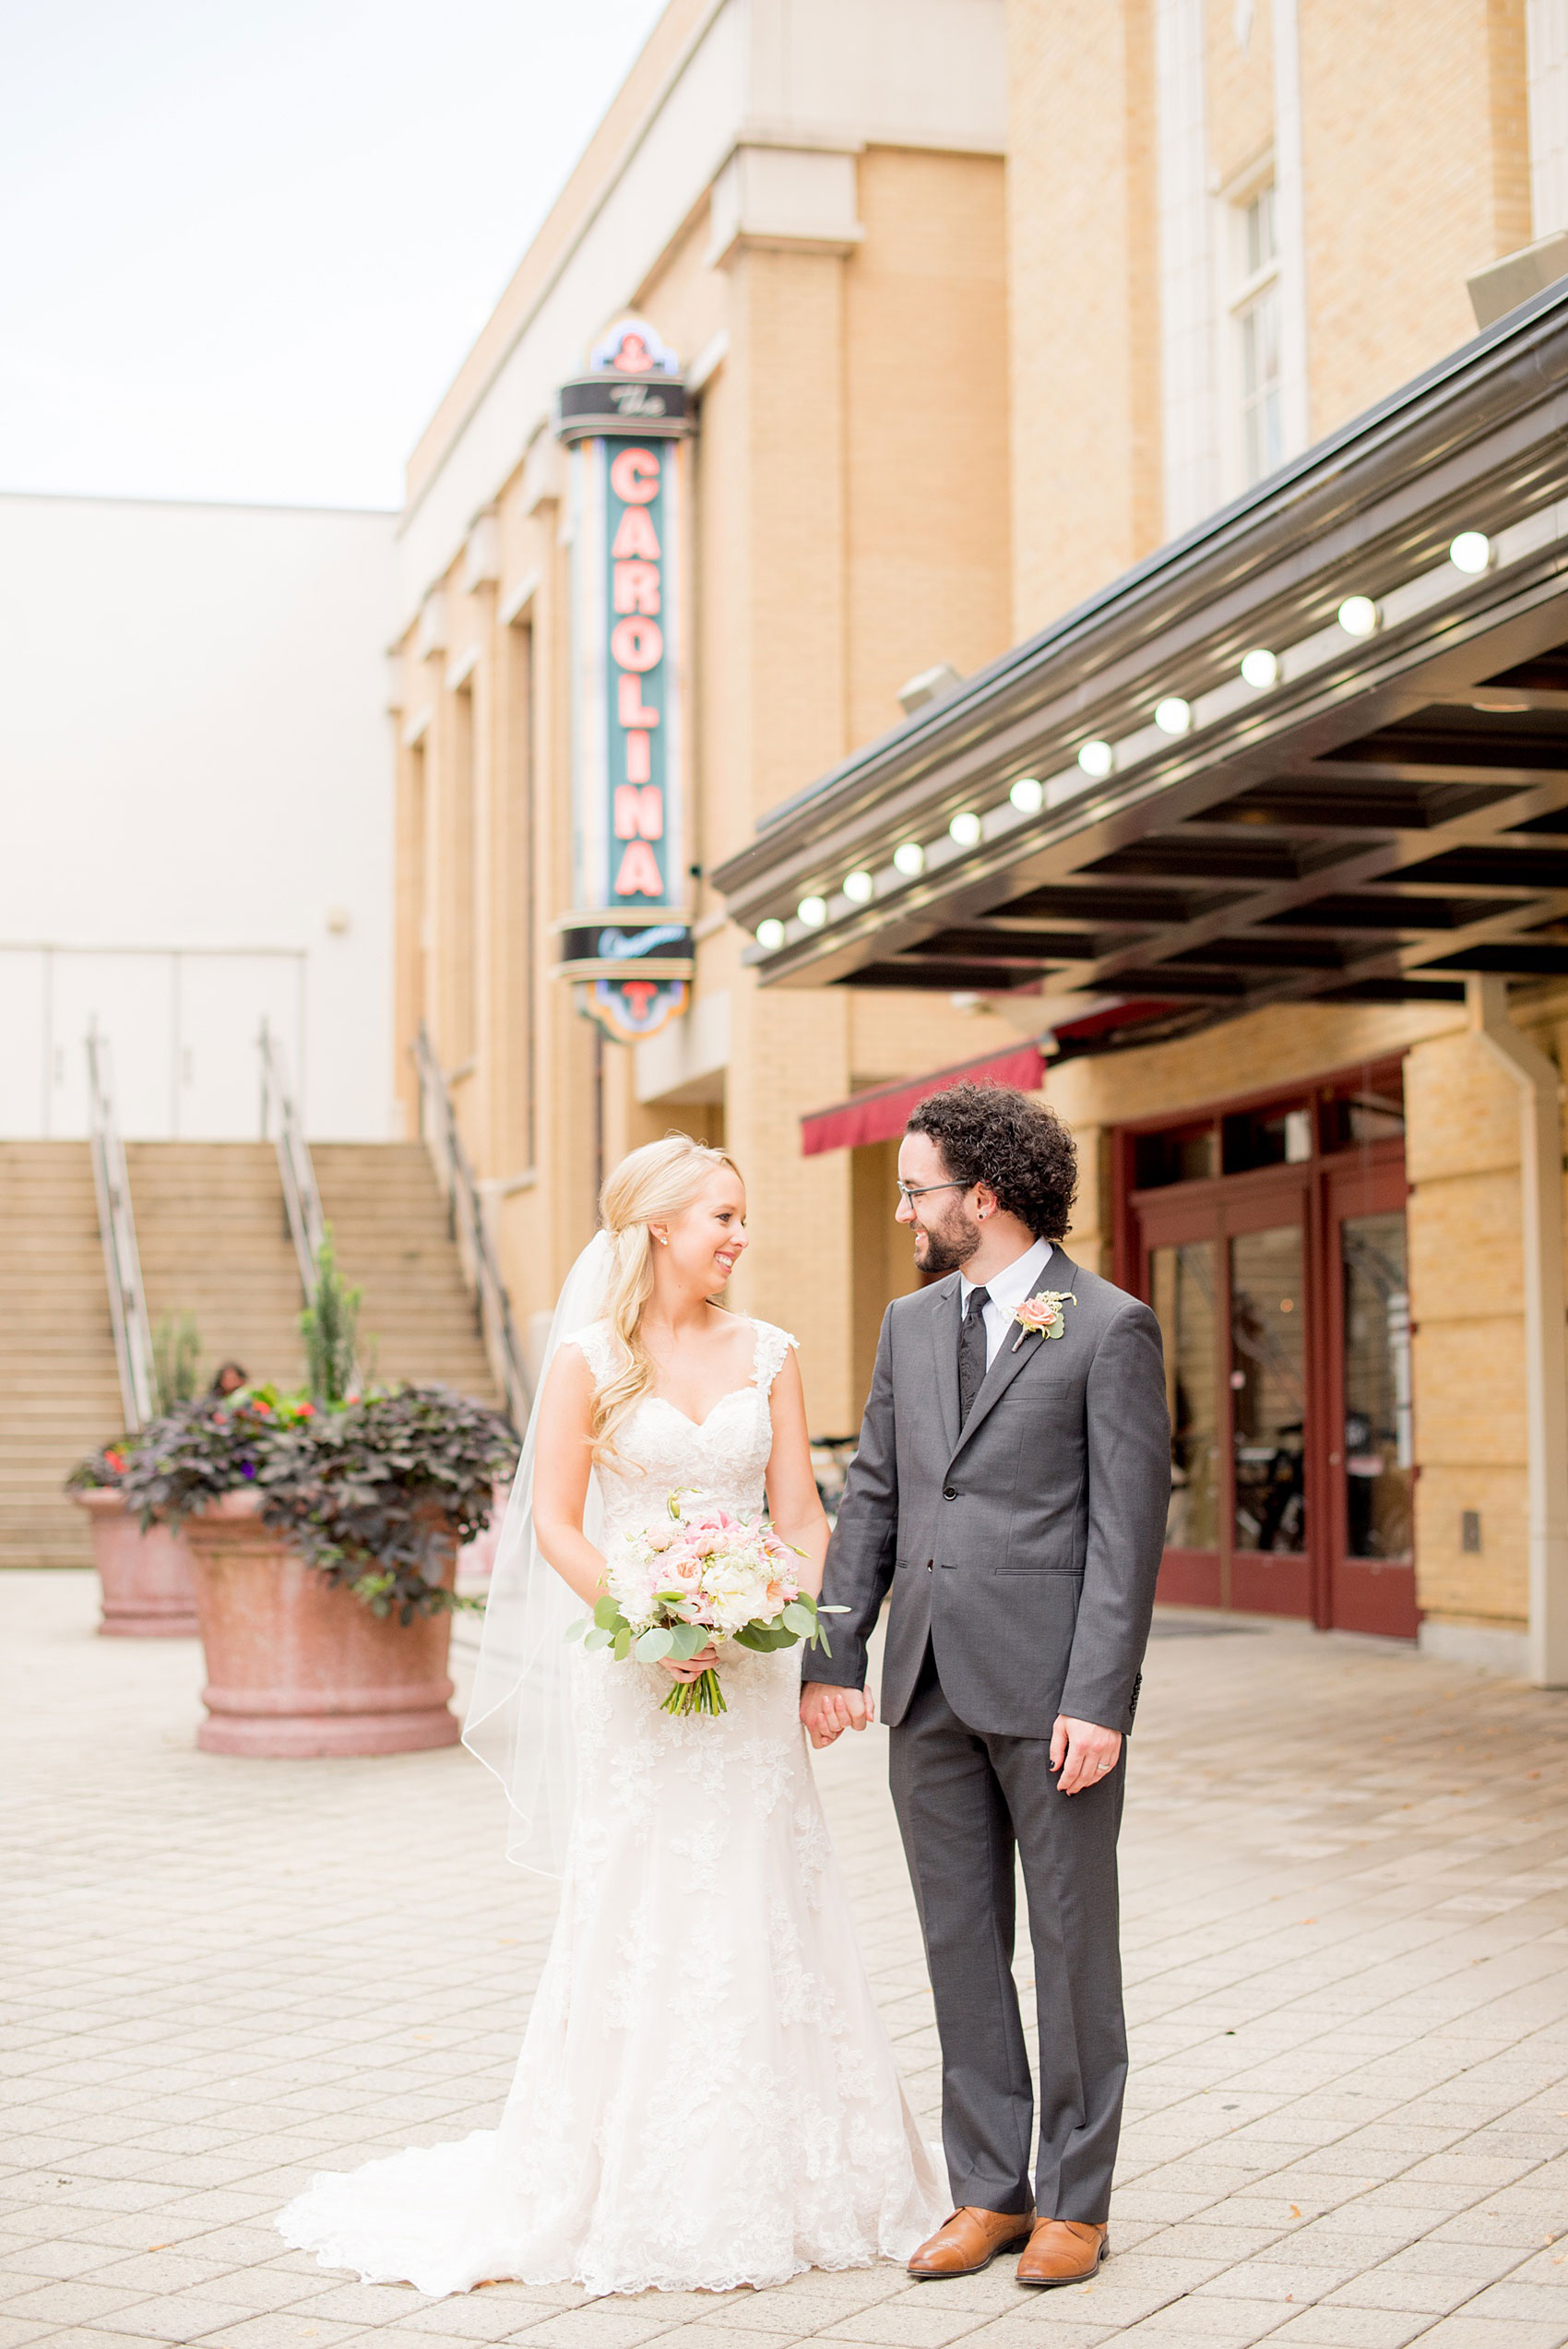 Mikkel Paige Photography photos from a wedding in Durham, North Carolina. Picture of the bride and groom in front of the Carolina sign at a downtown theater.